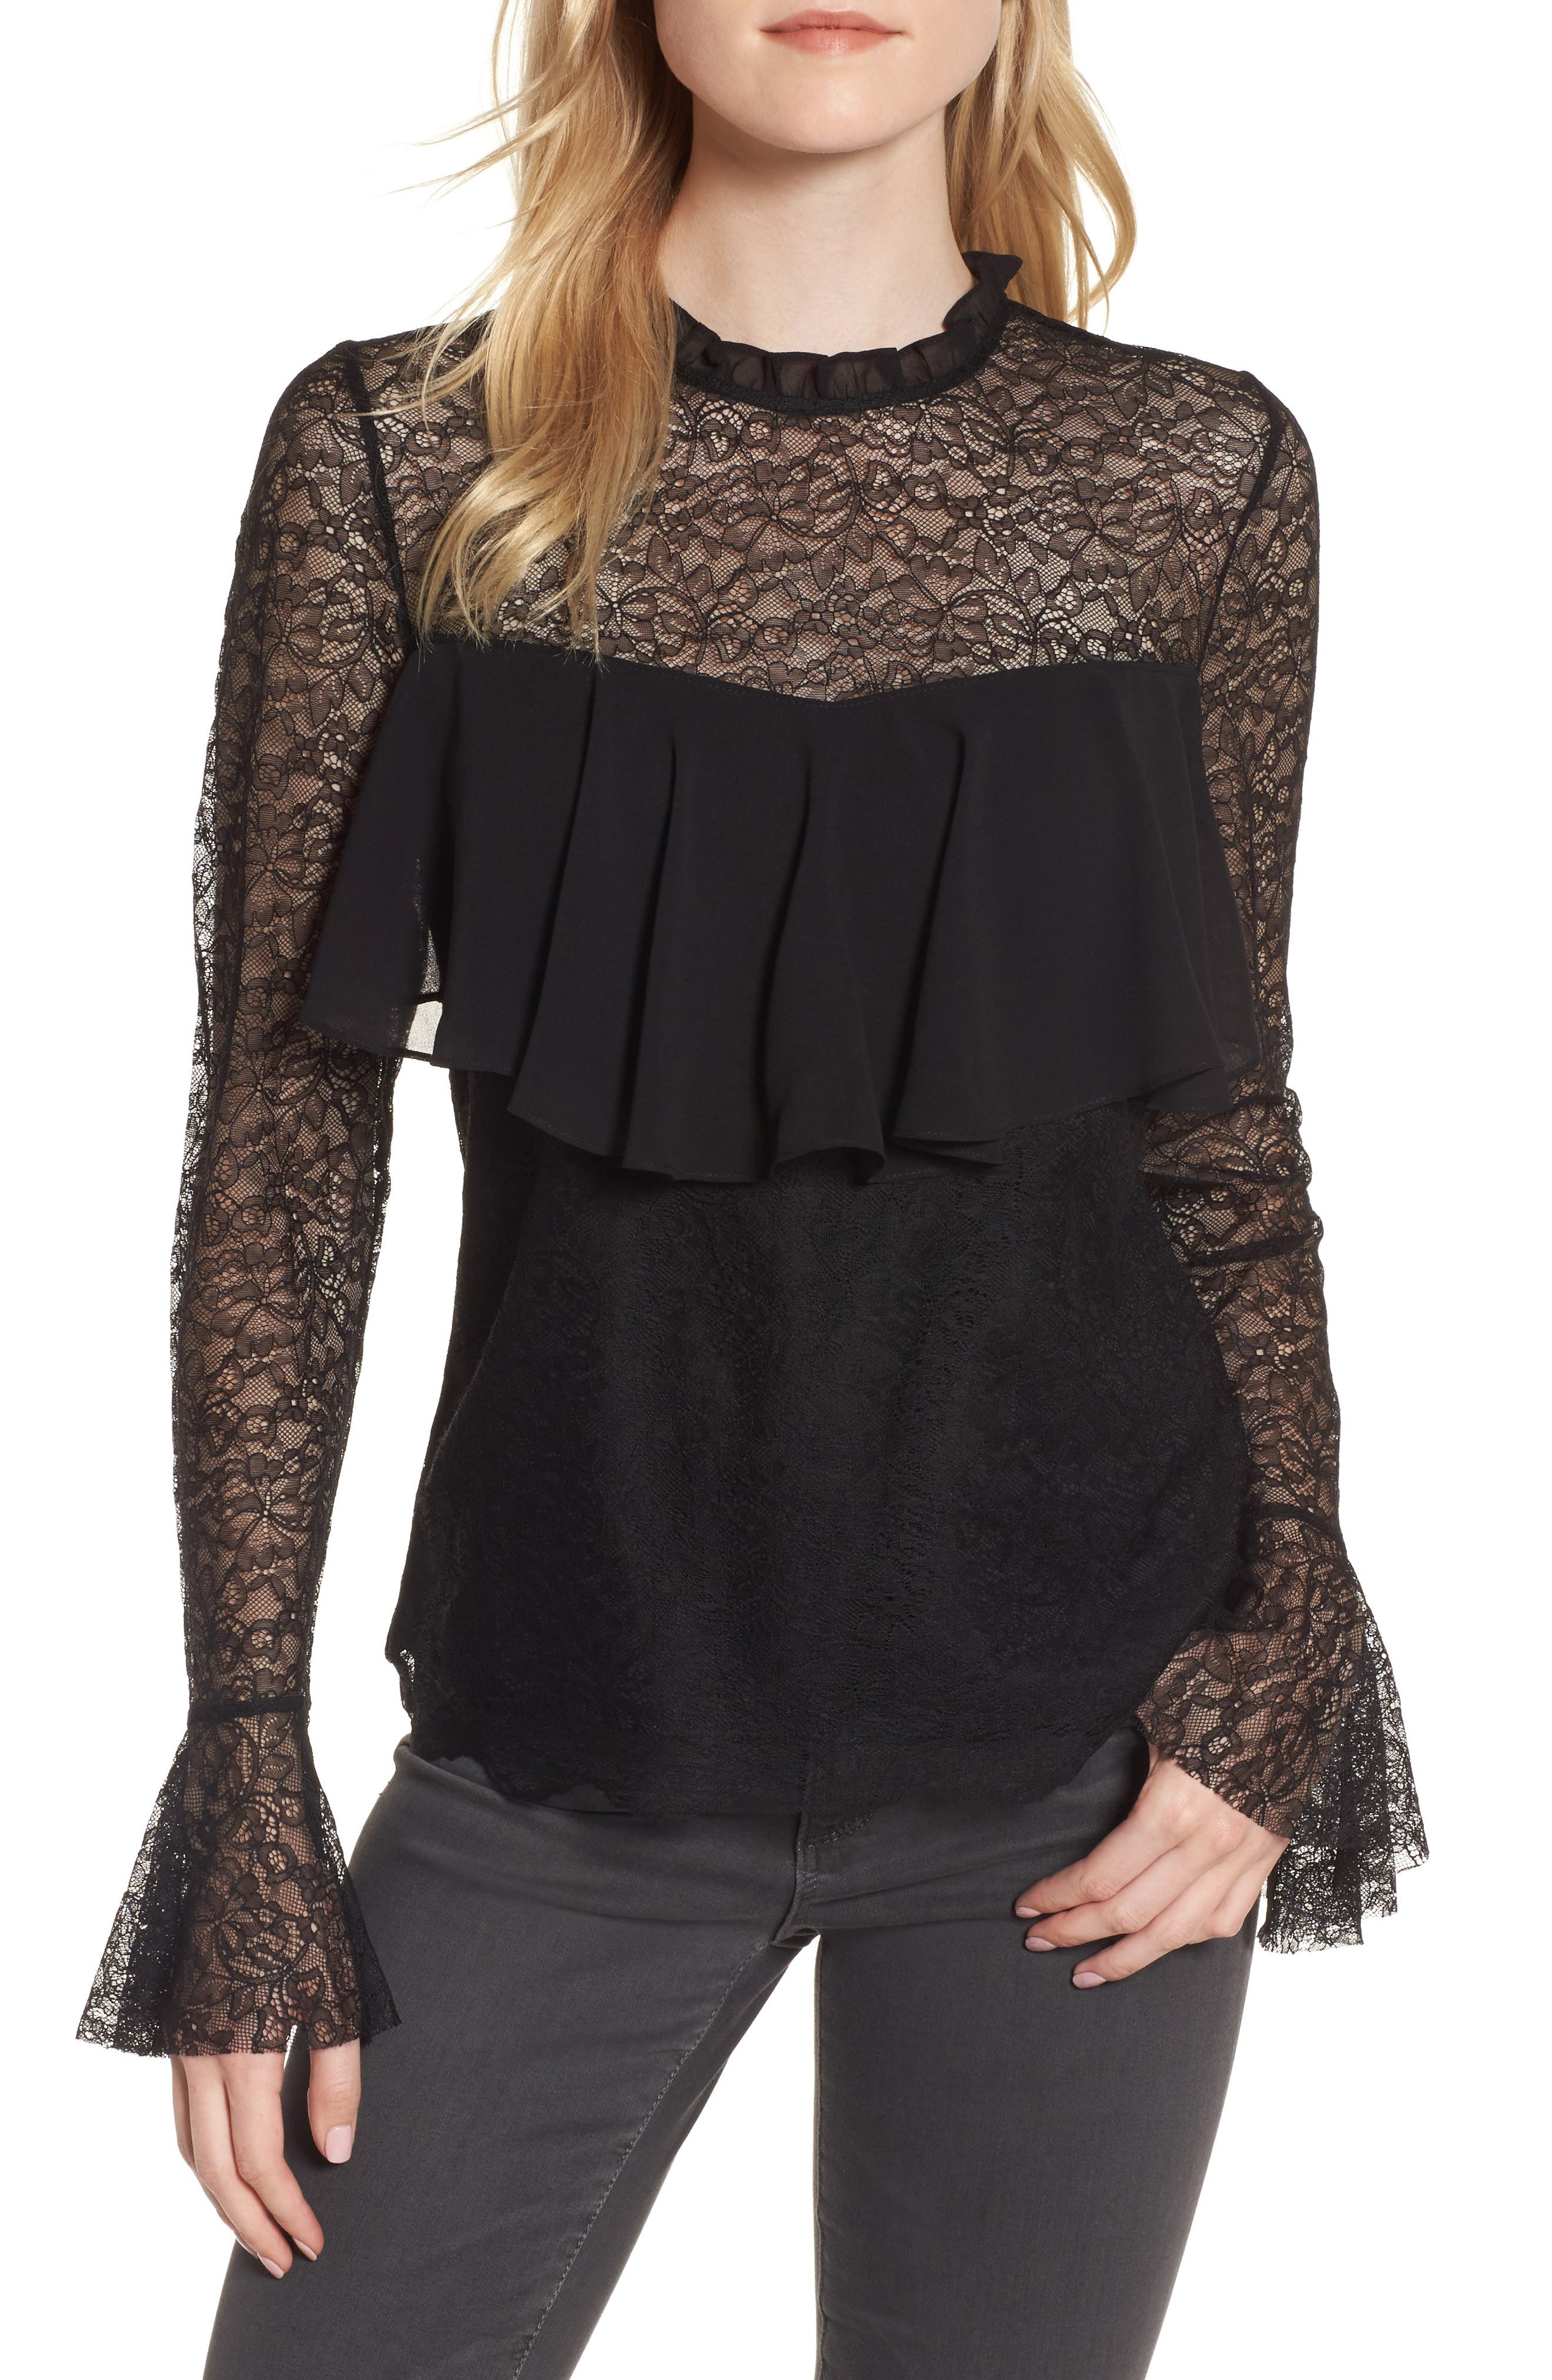 Main Image - Chelsea28 Ruffle Lace Top